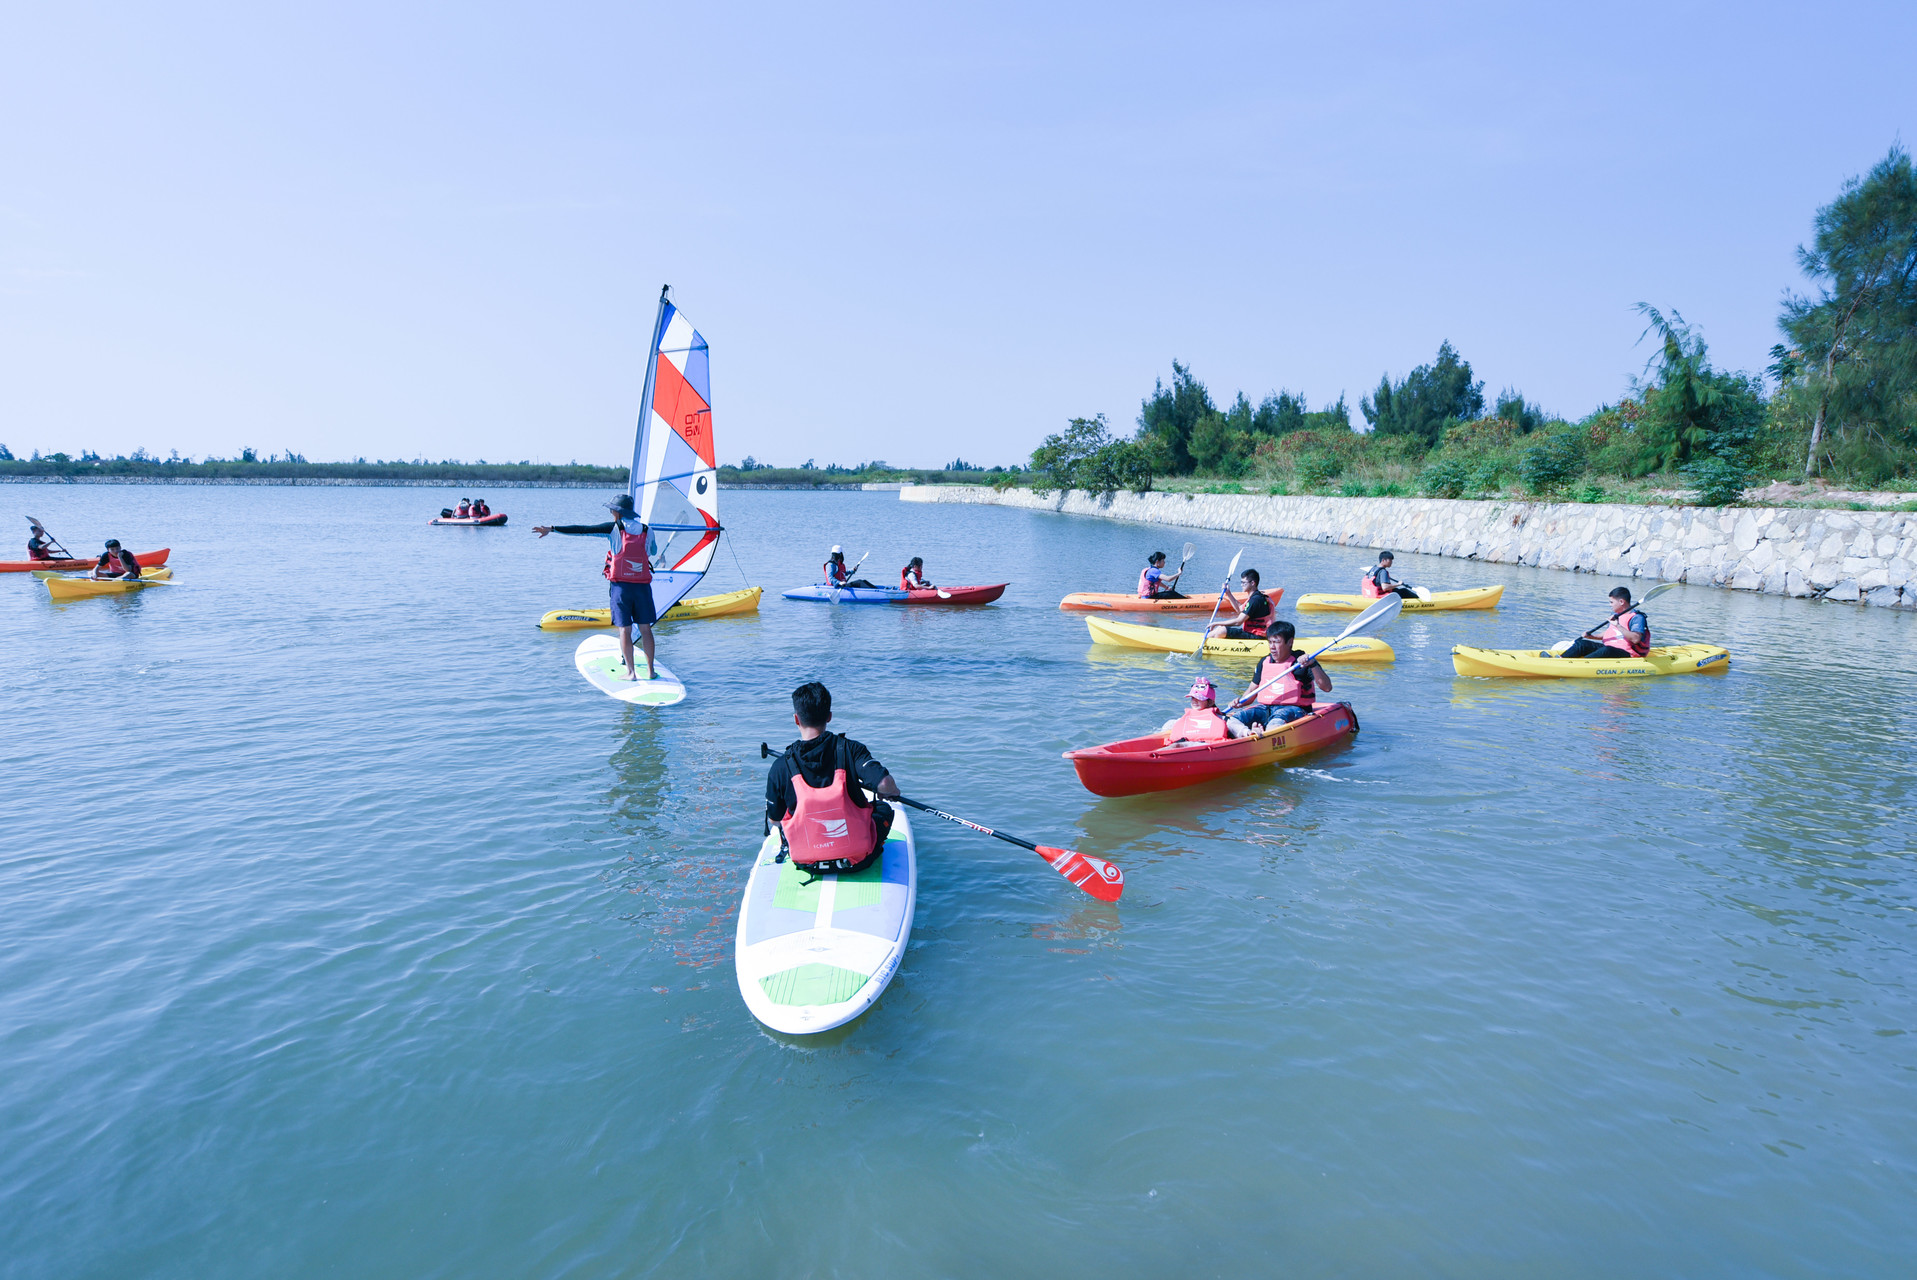 Waterpark Kinmen Location Basic Skills In Relay Actual Practice On Water Includes Sailboat And Kayak Basics Fun Games Etc